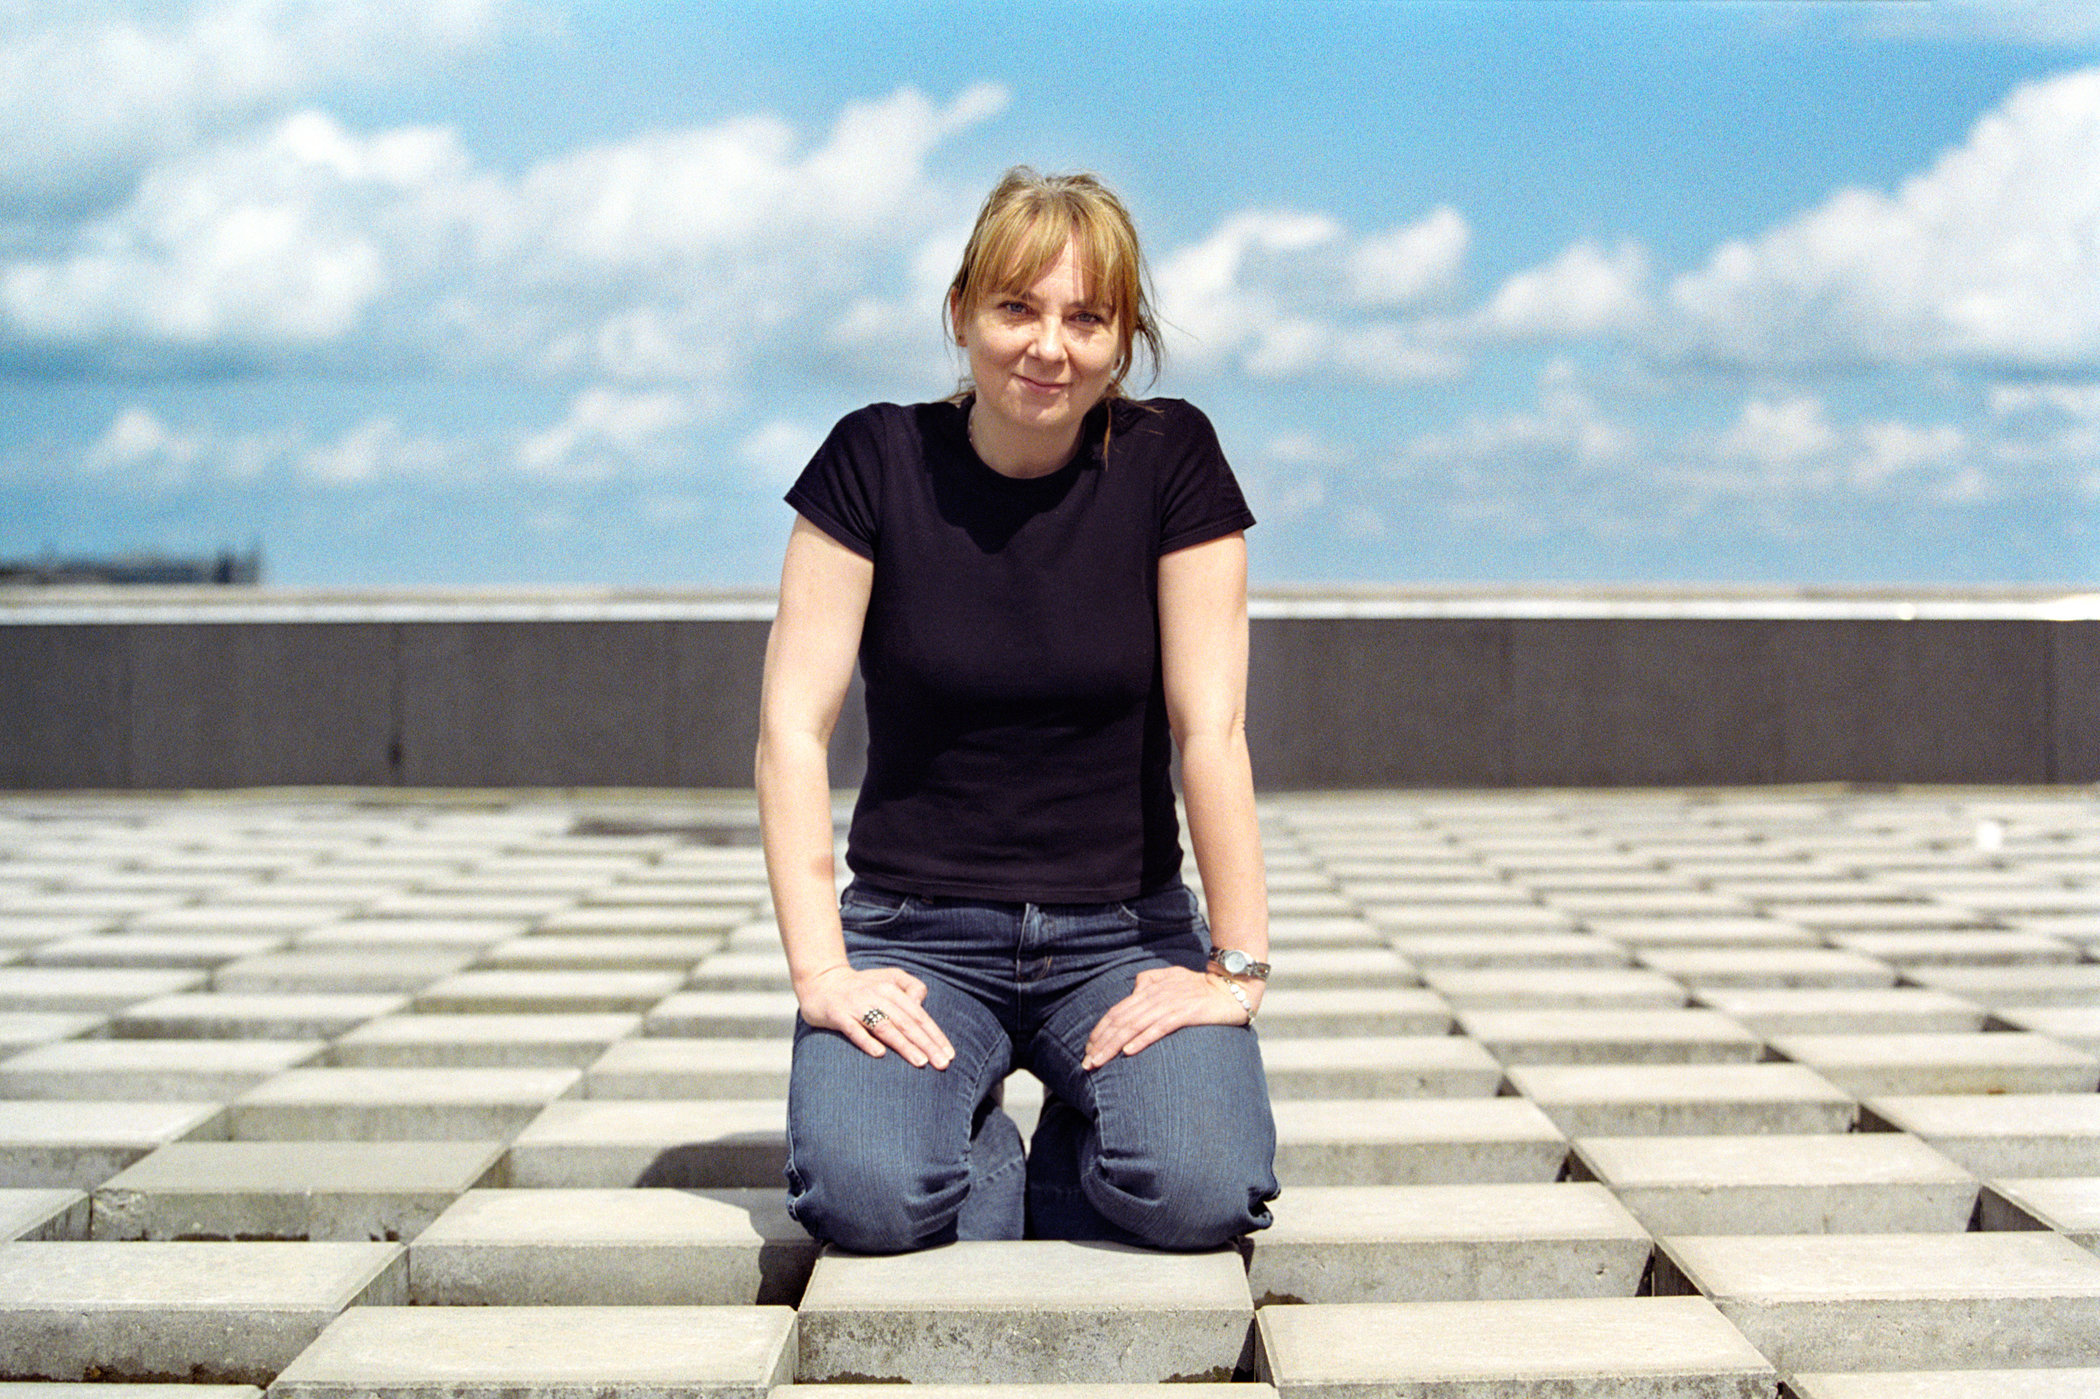 Anu Leinonen of OMA for book: Europe's favourites